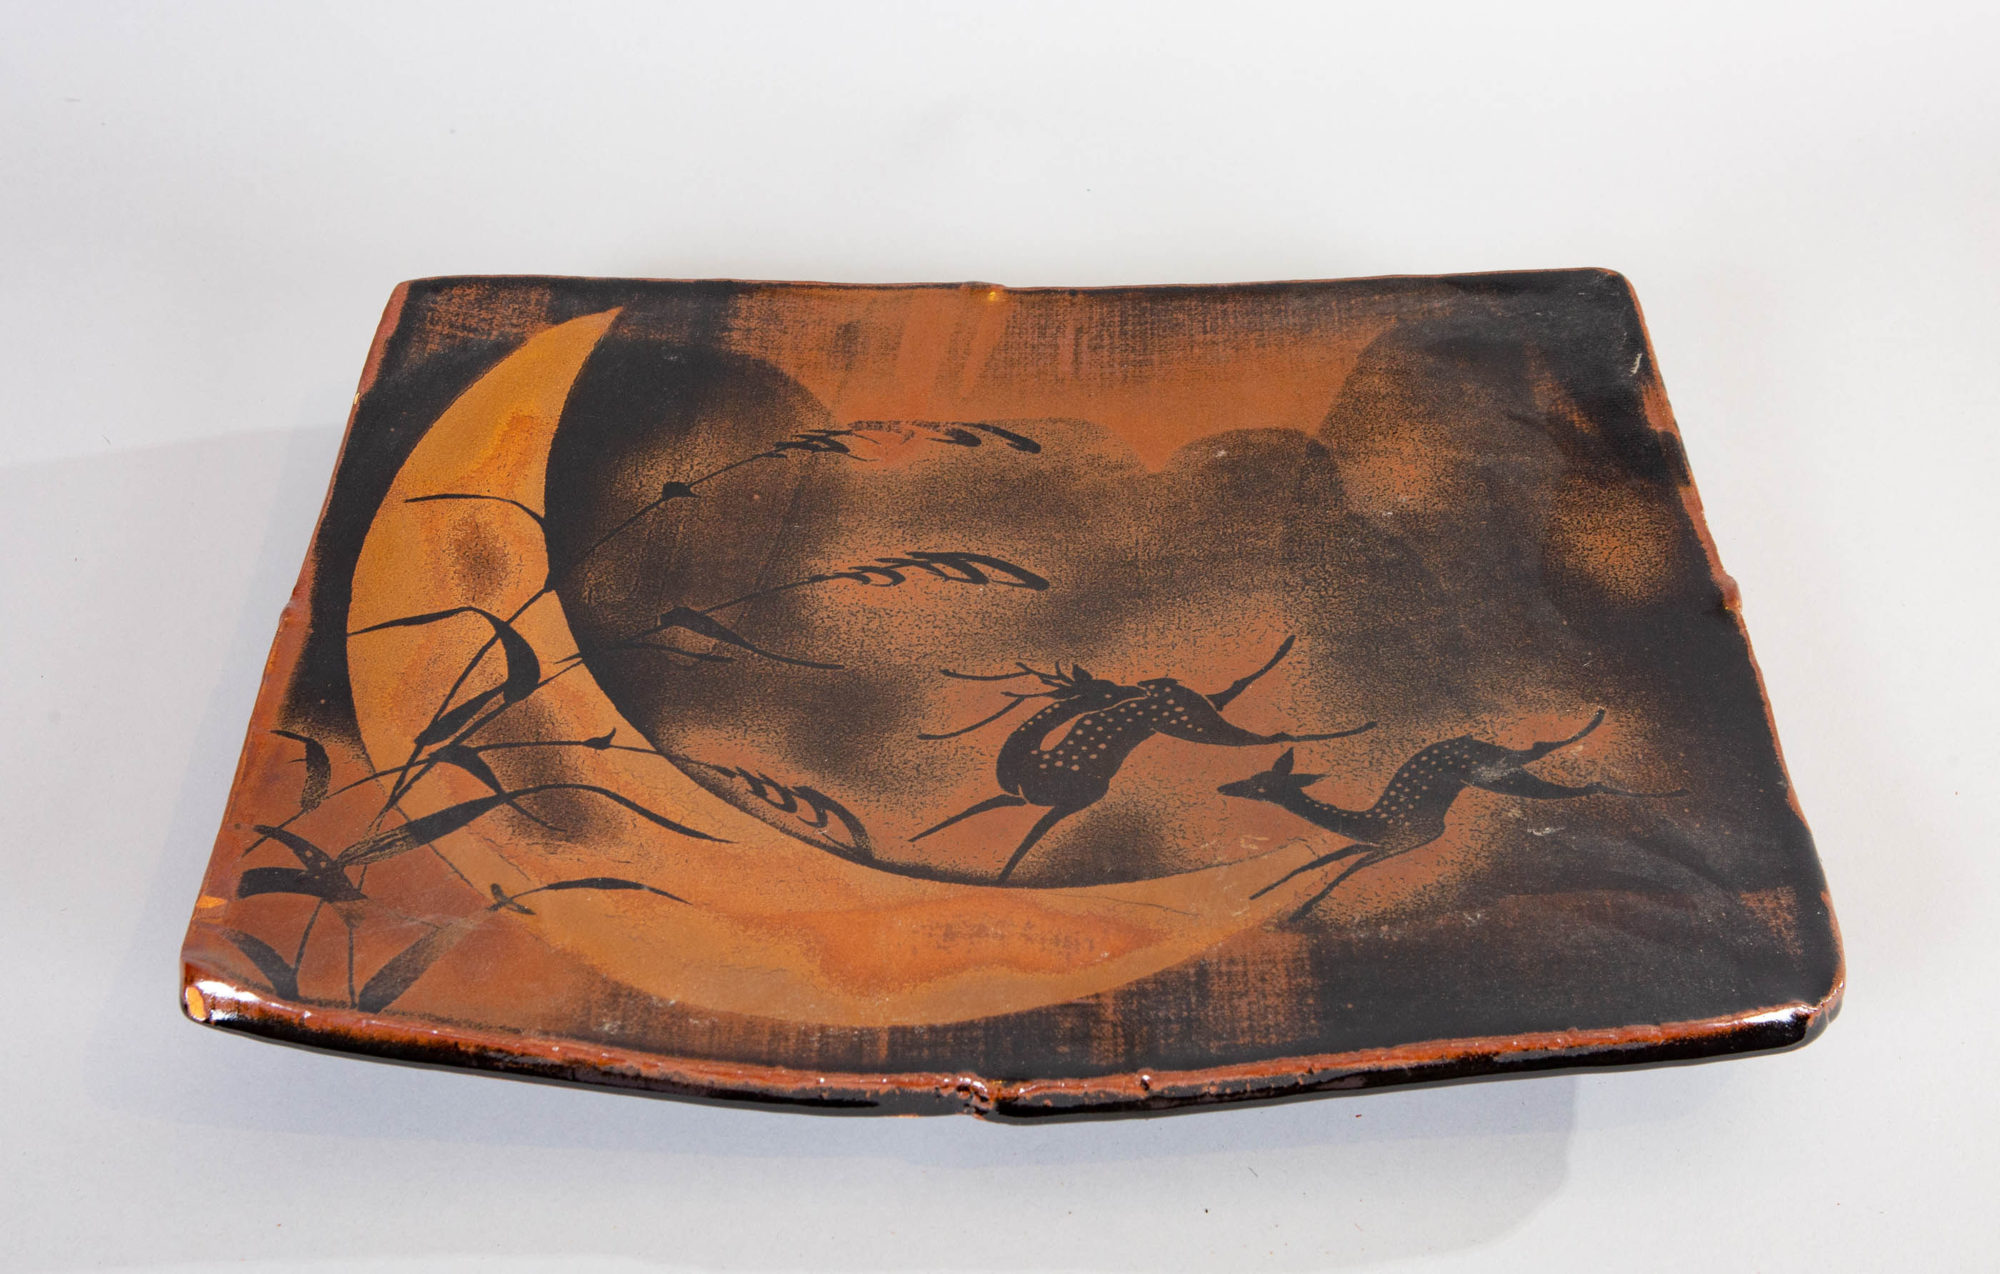 Mashiko-ware Plate with Moon and Buck and Doe